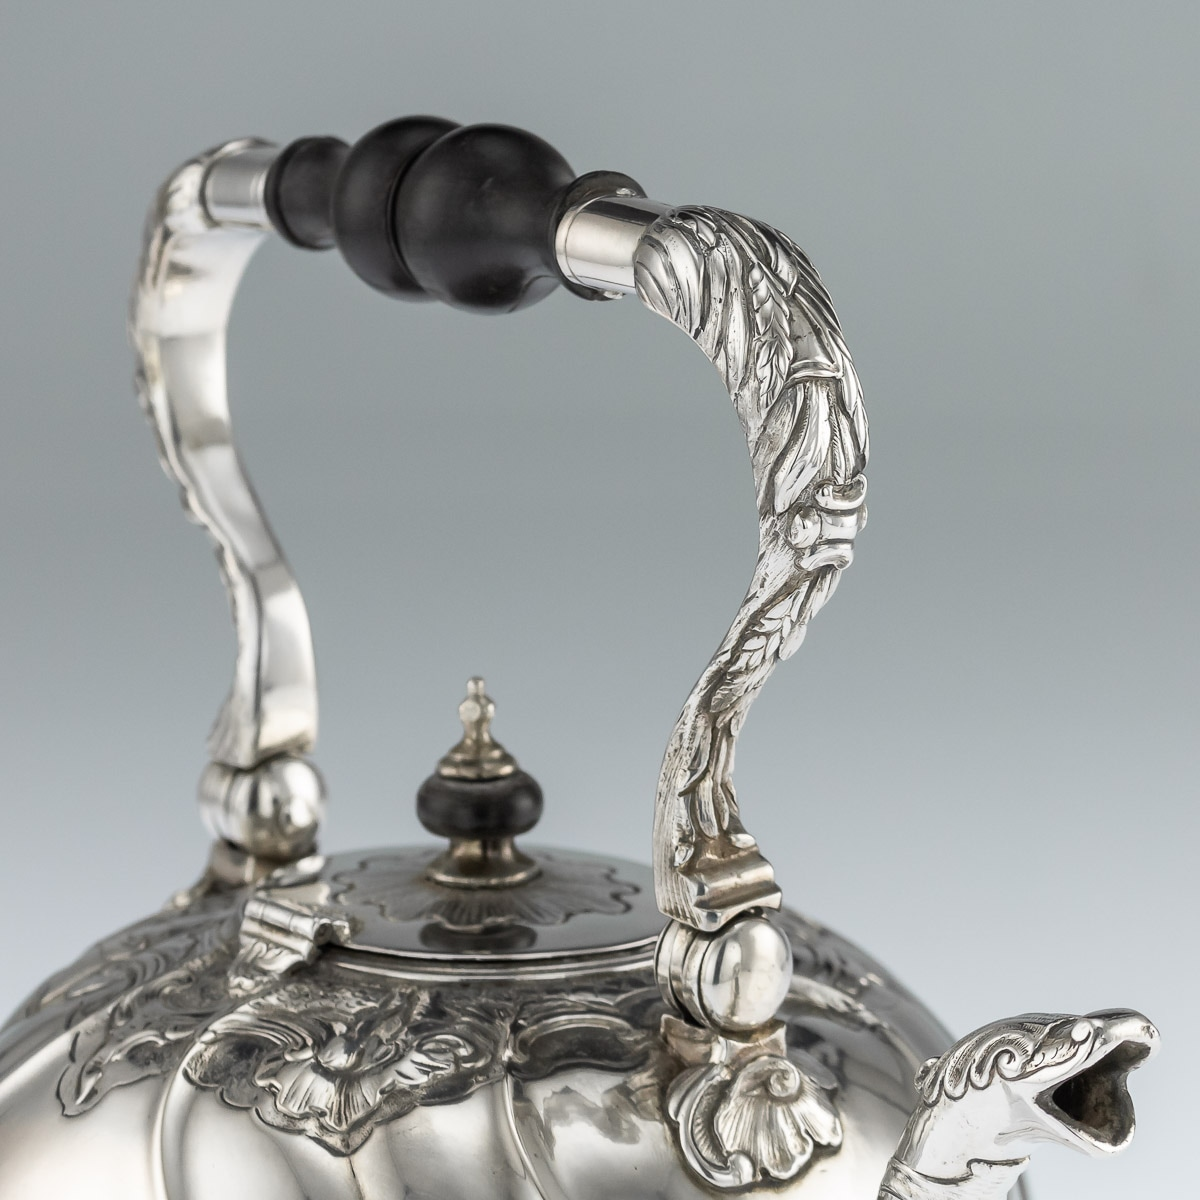 Pushkin Antiques — ANTIQUE 18thC IMPERIAL RUSSIAN SOLID SILVER TEA KETTLE  ON STAND, MOSCOW c 1761